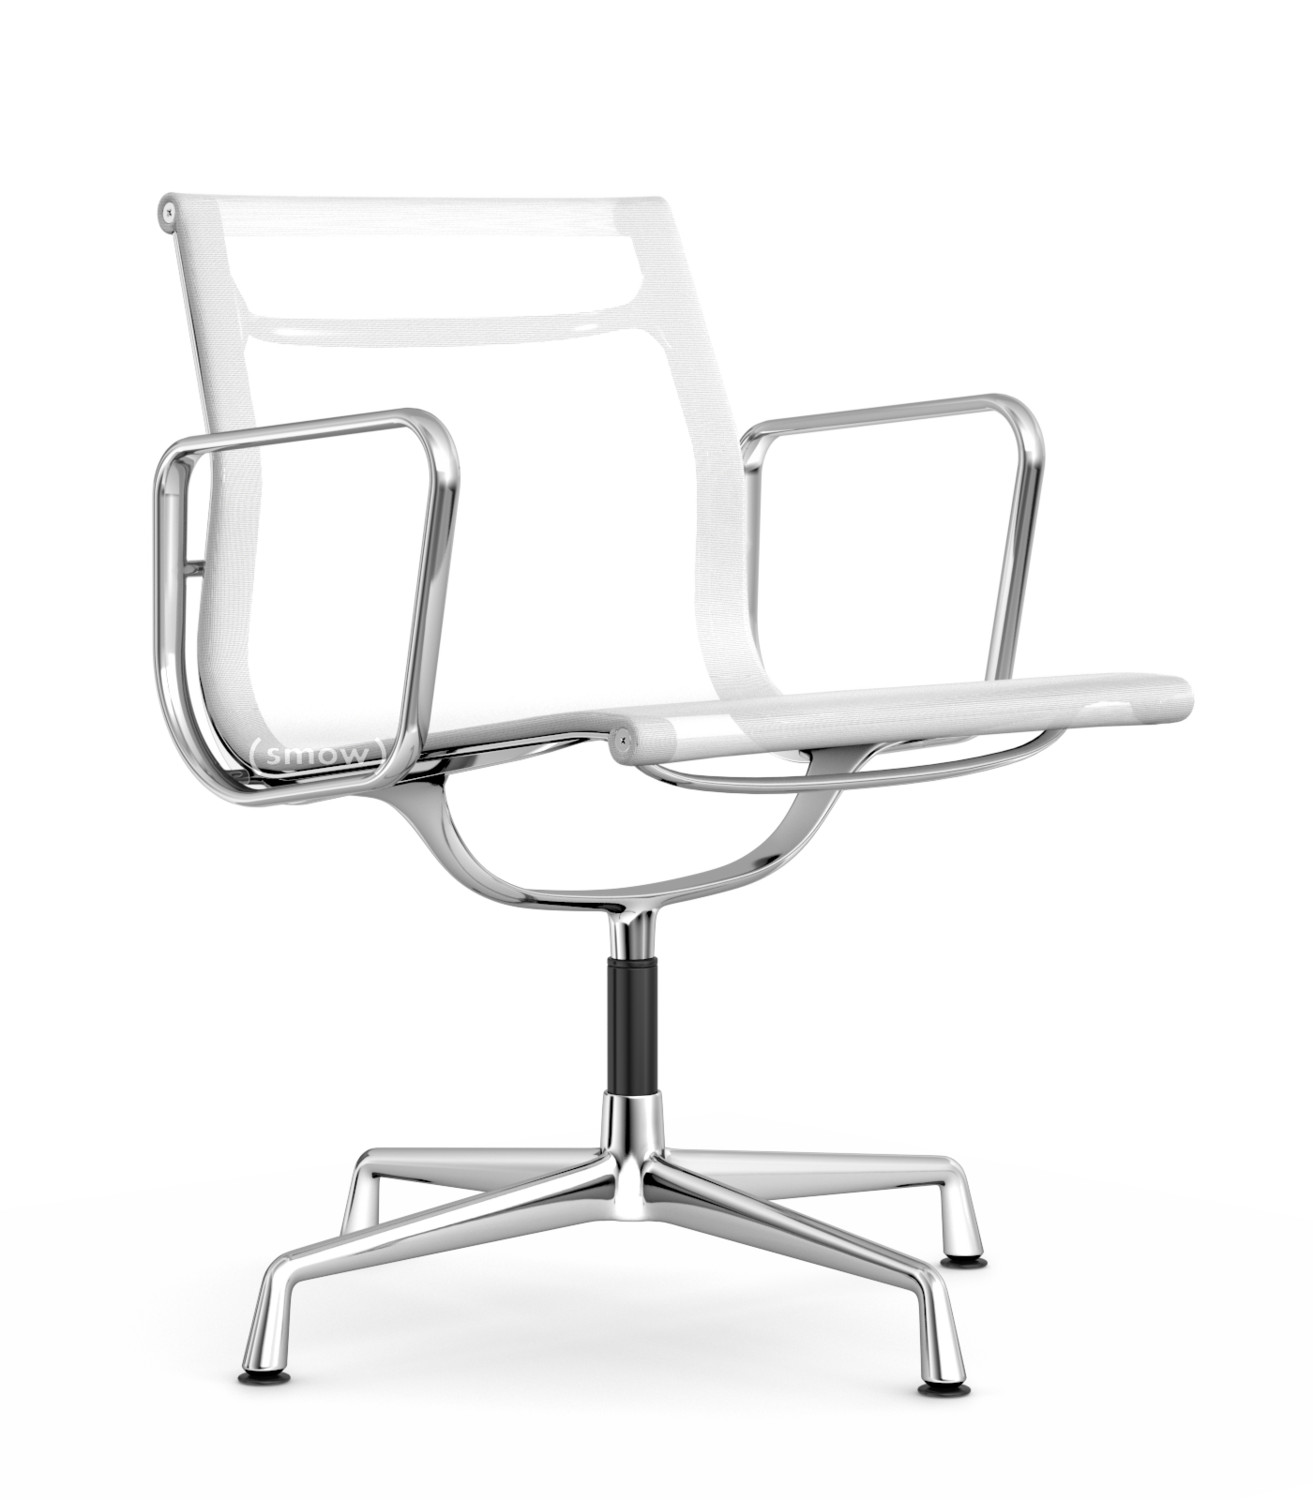 Vitra aluminium group ea 107 ea 108 ea 108 swivelling for Eames chair vitra replica